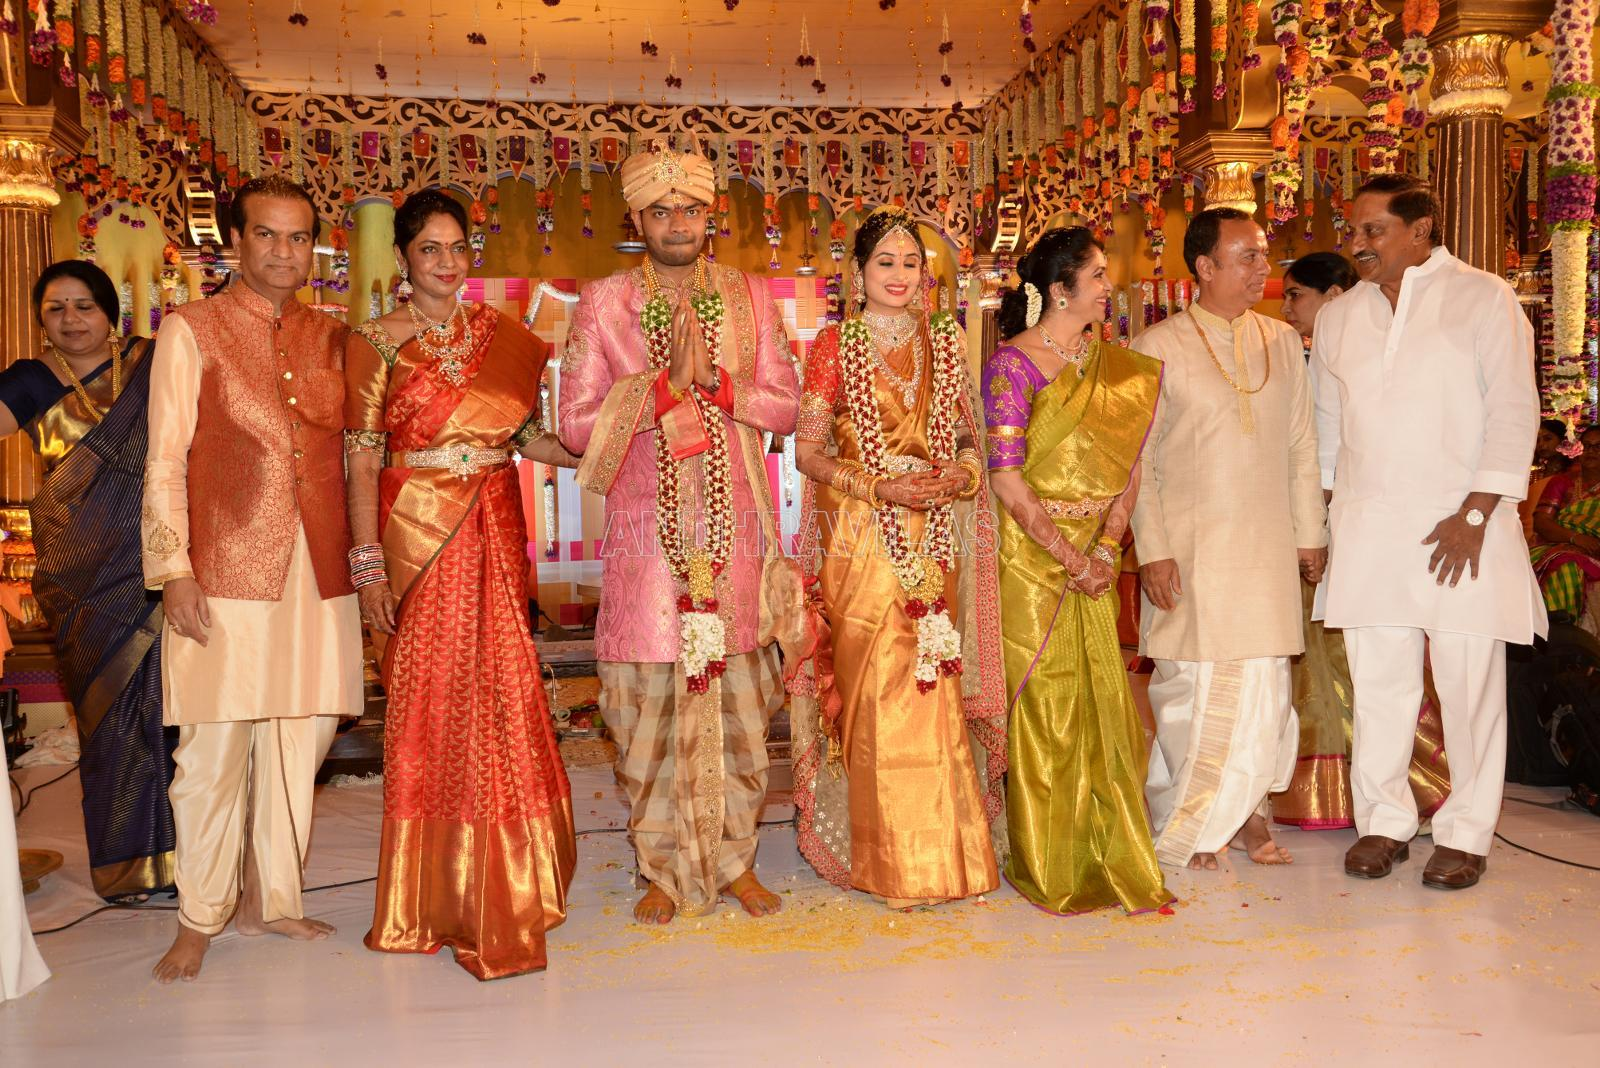 Karan saraogi wedding